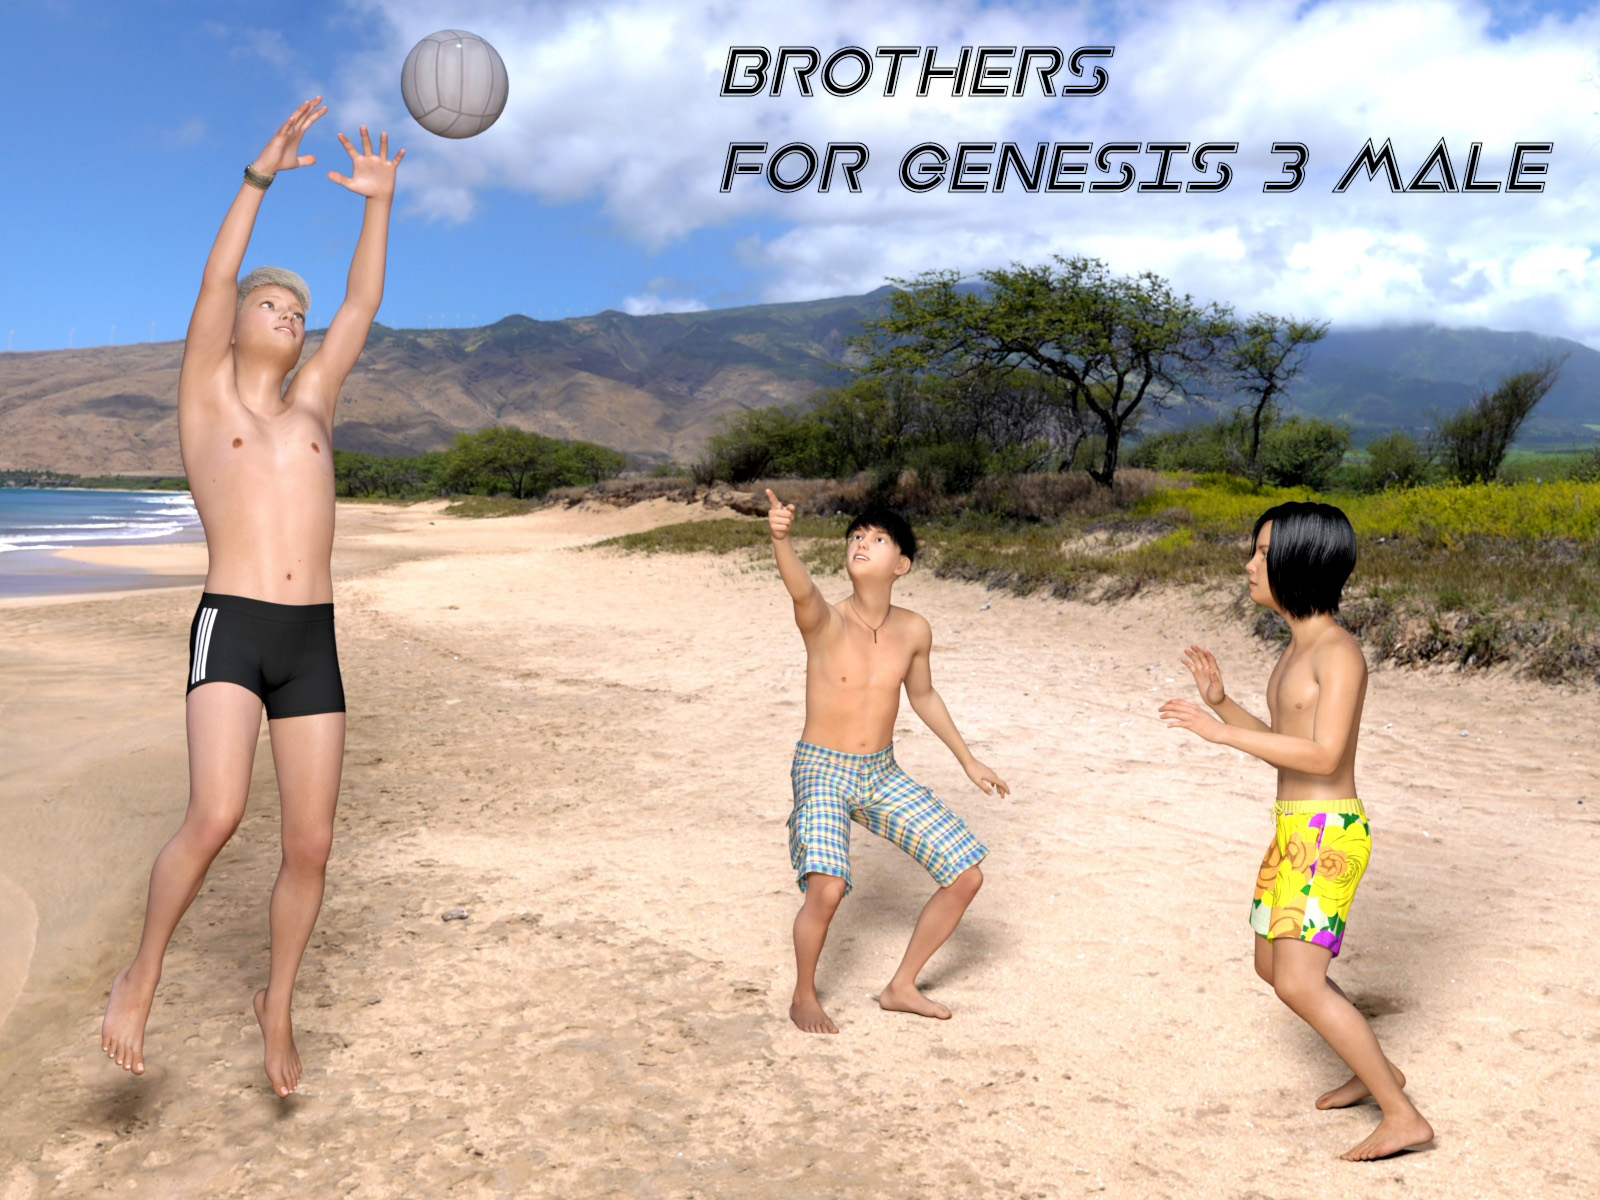 Brothers for Genesis 3 Male